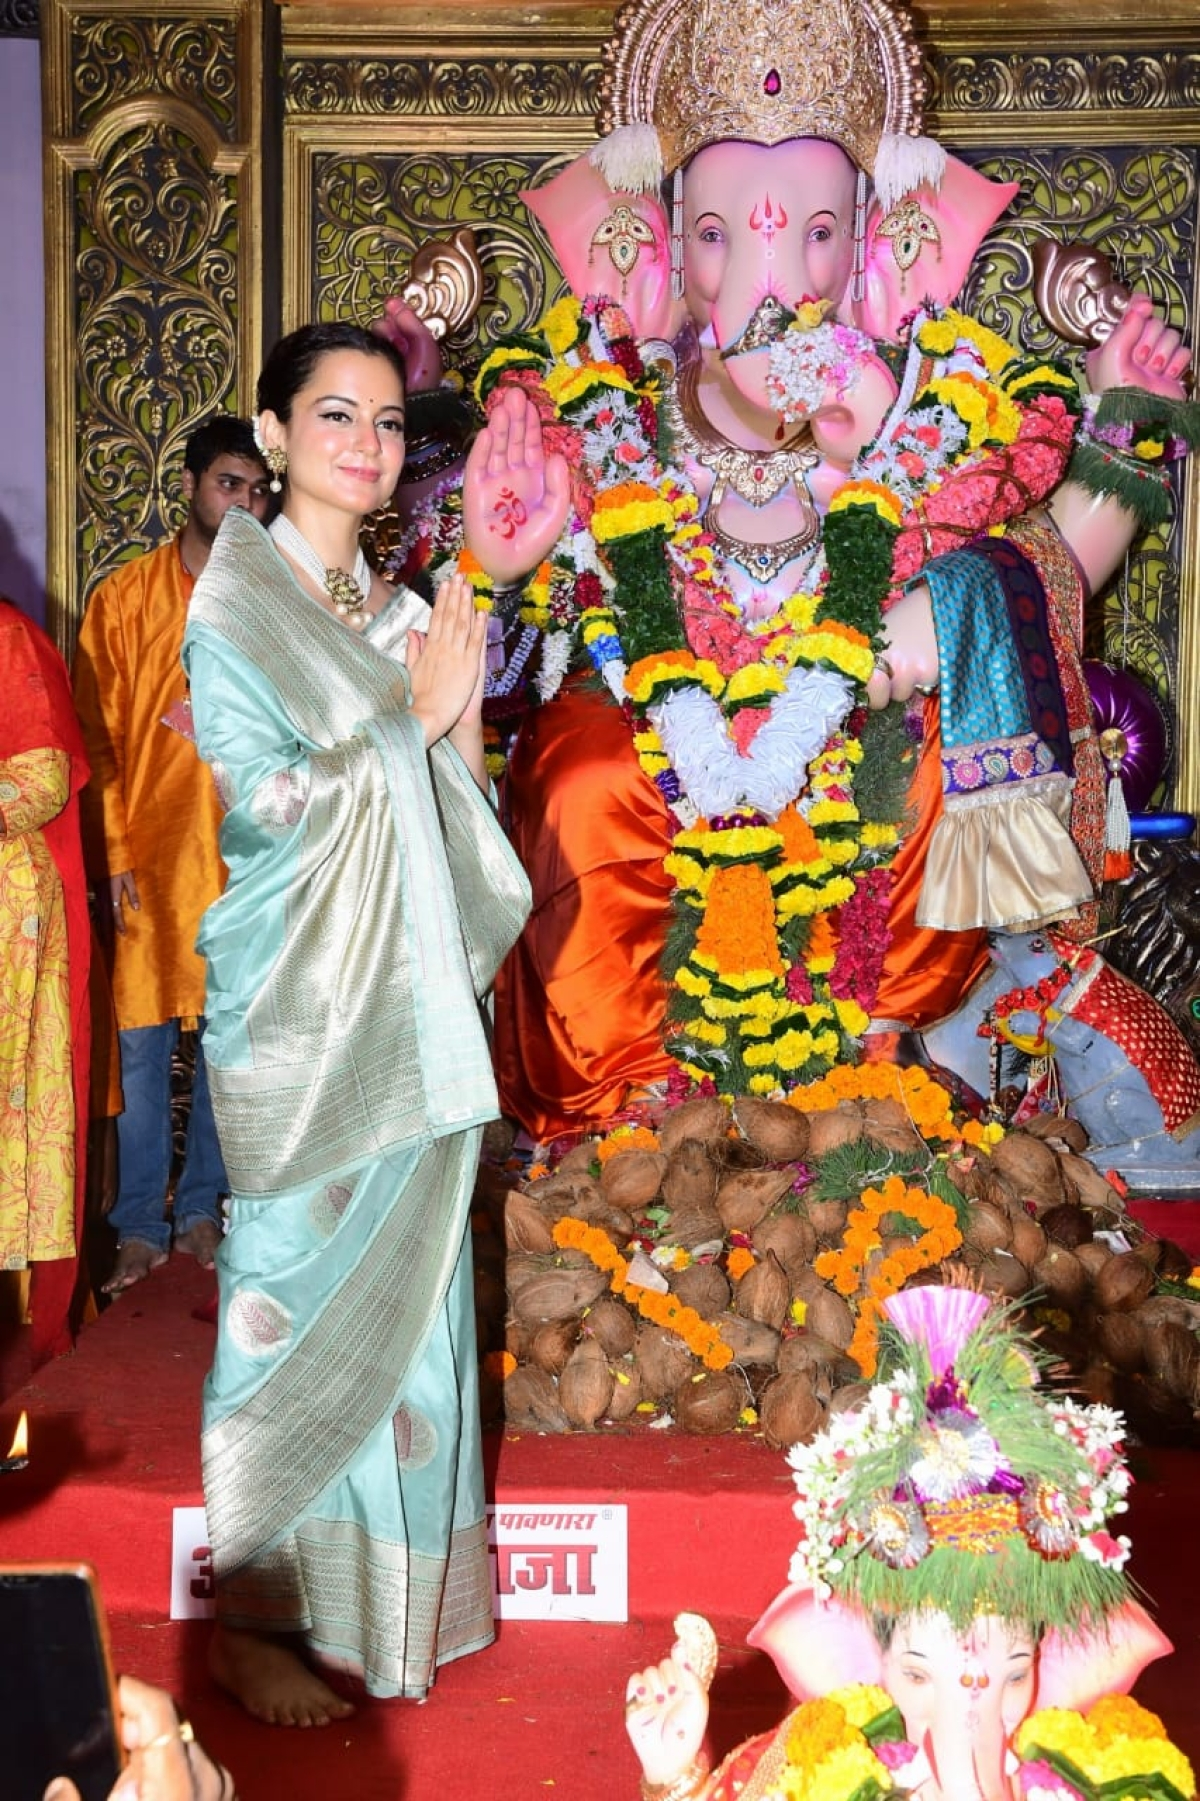 Kangana Ranaut paid visit at the suburban king 'Andhericha Raja' with her sister Rangoli Chandel.